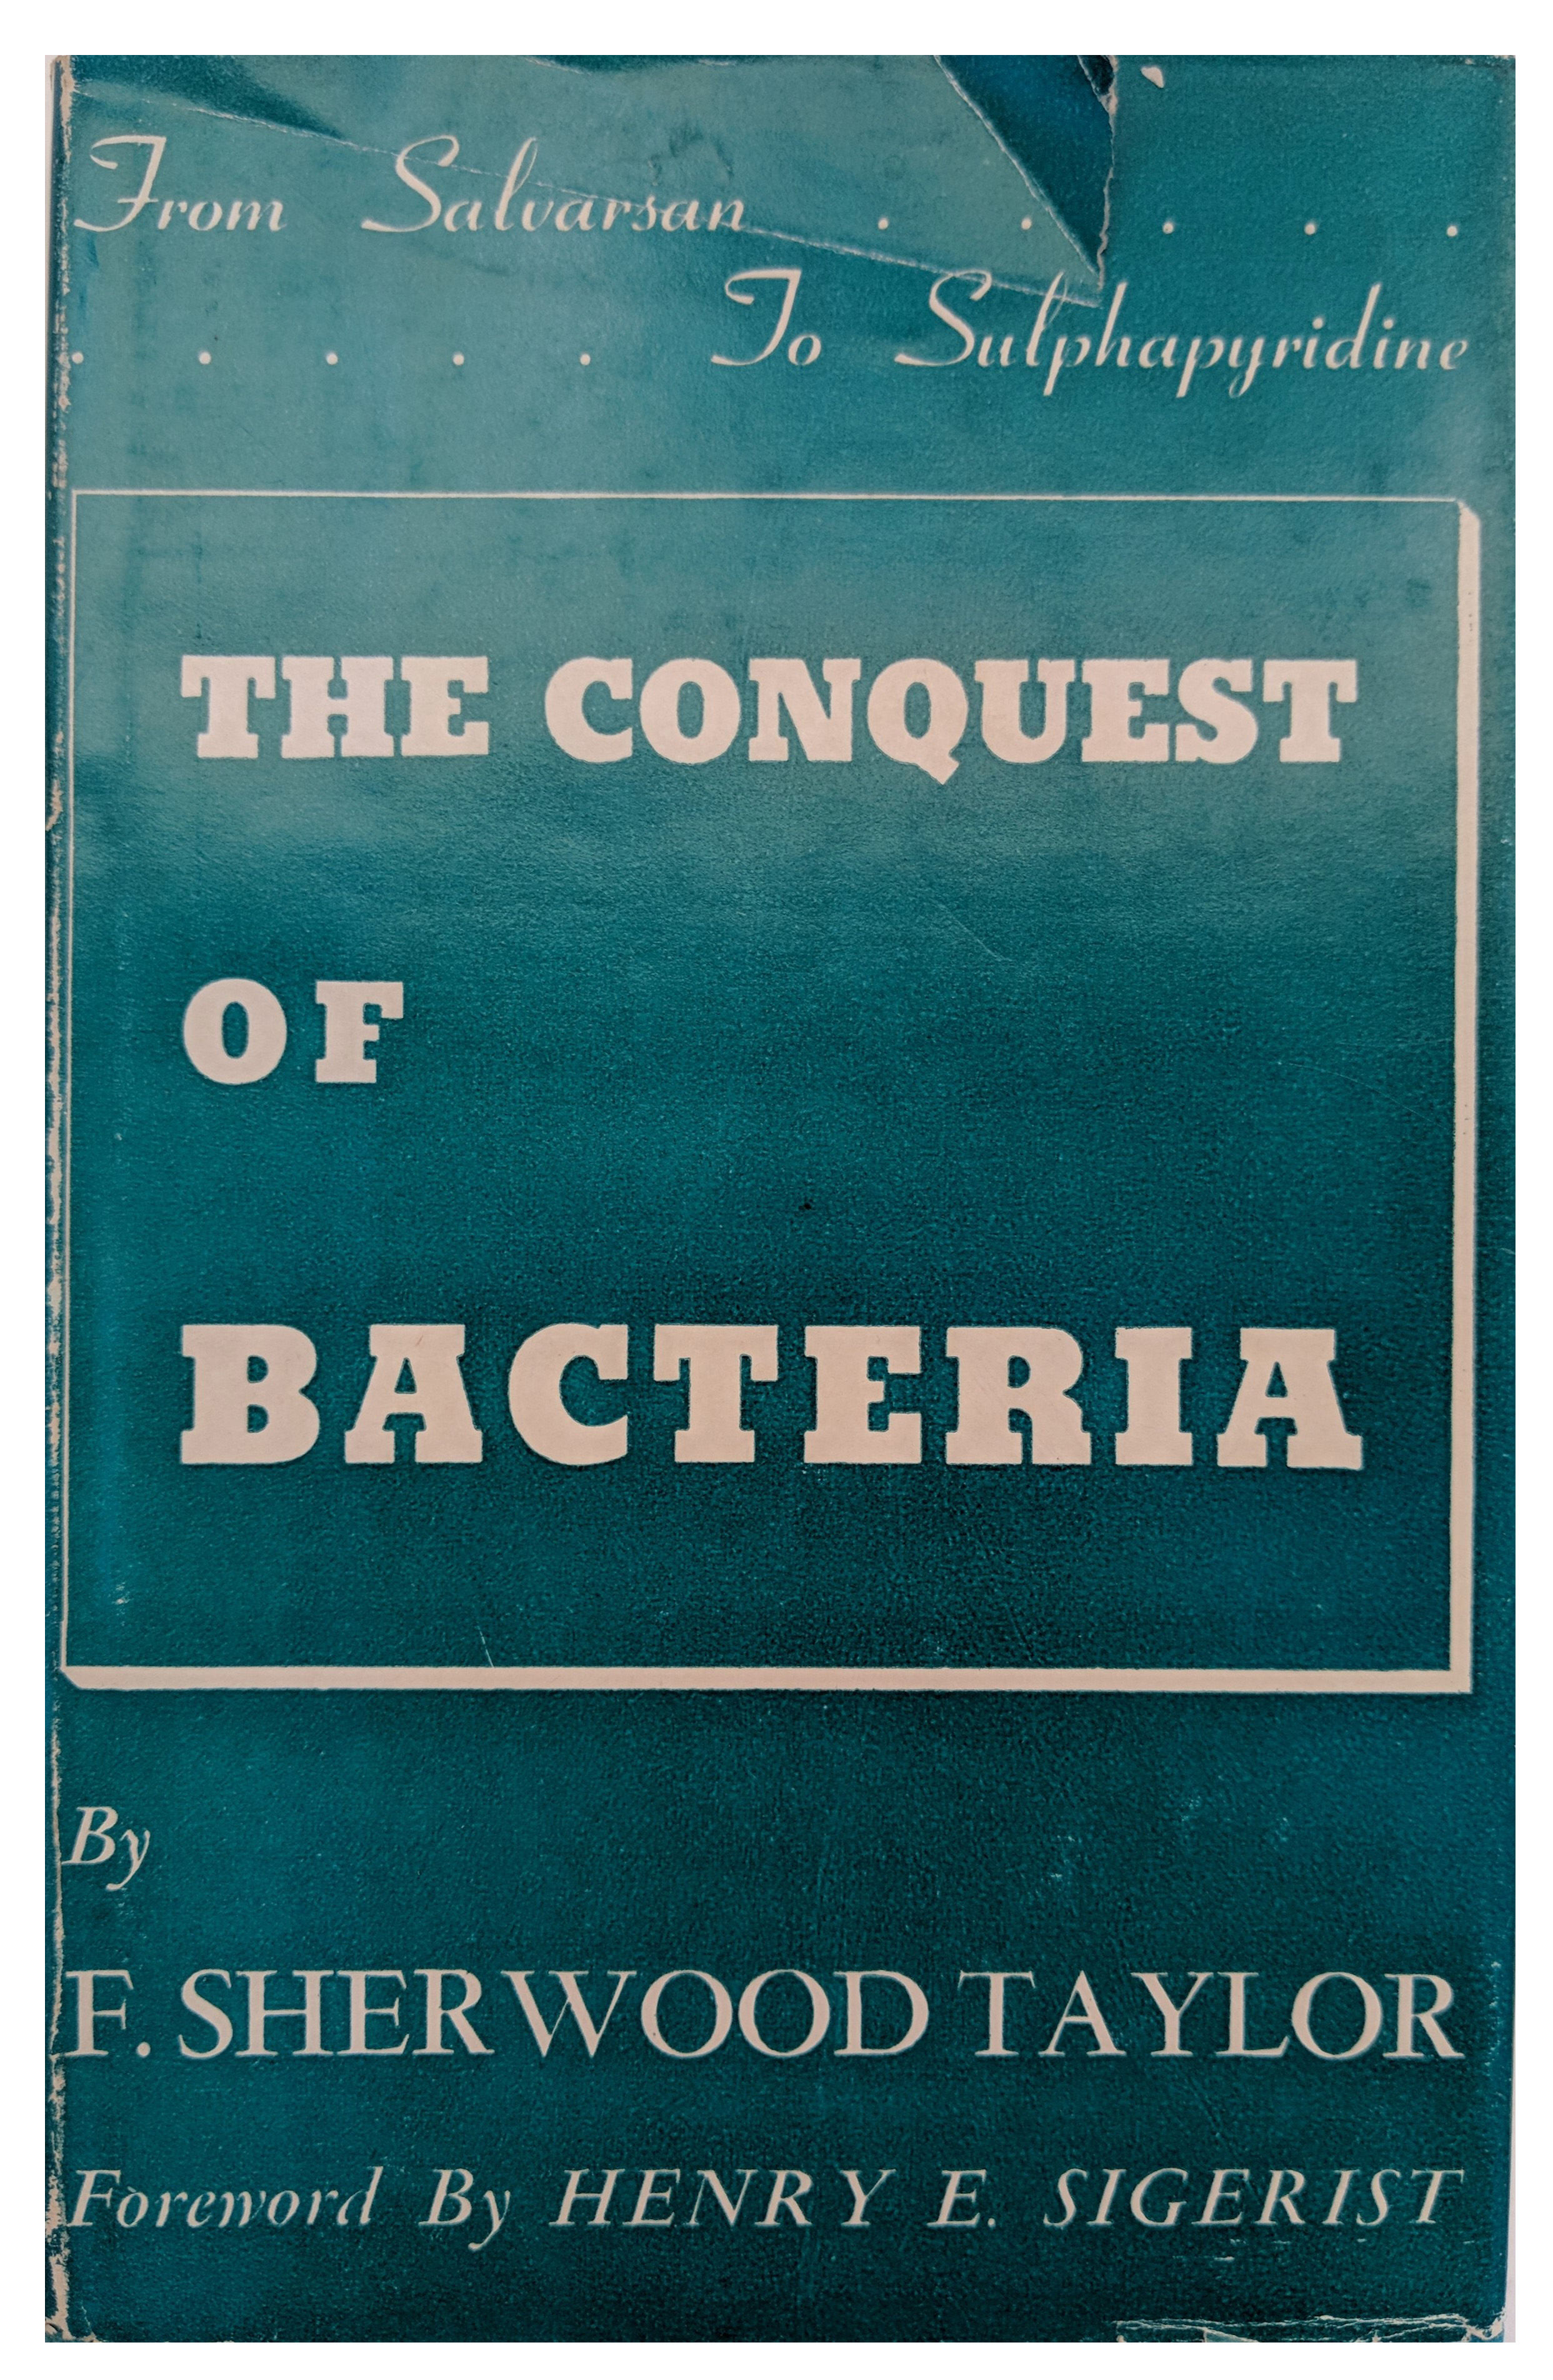 Image for The Conquest of Bacteria; From Salvarsan to Sulphapyridine.